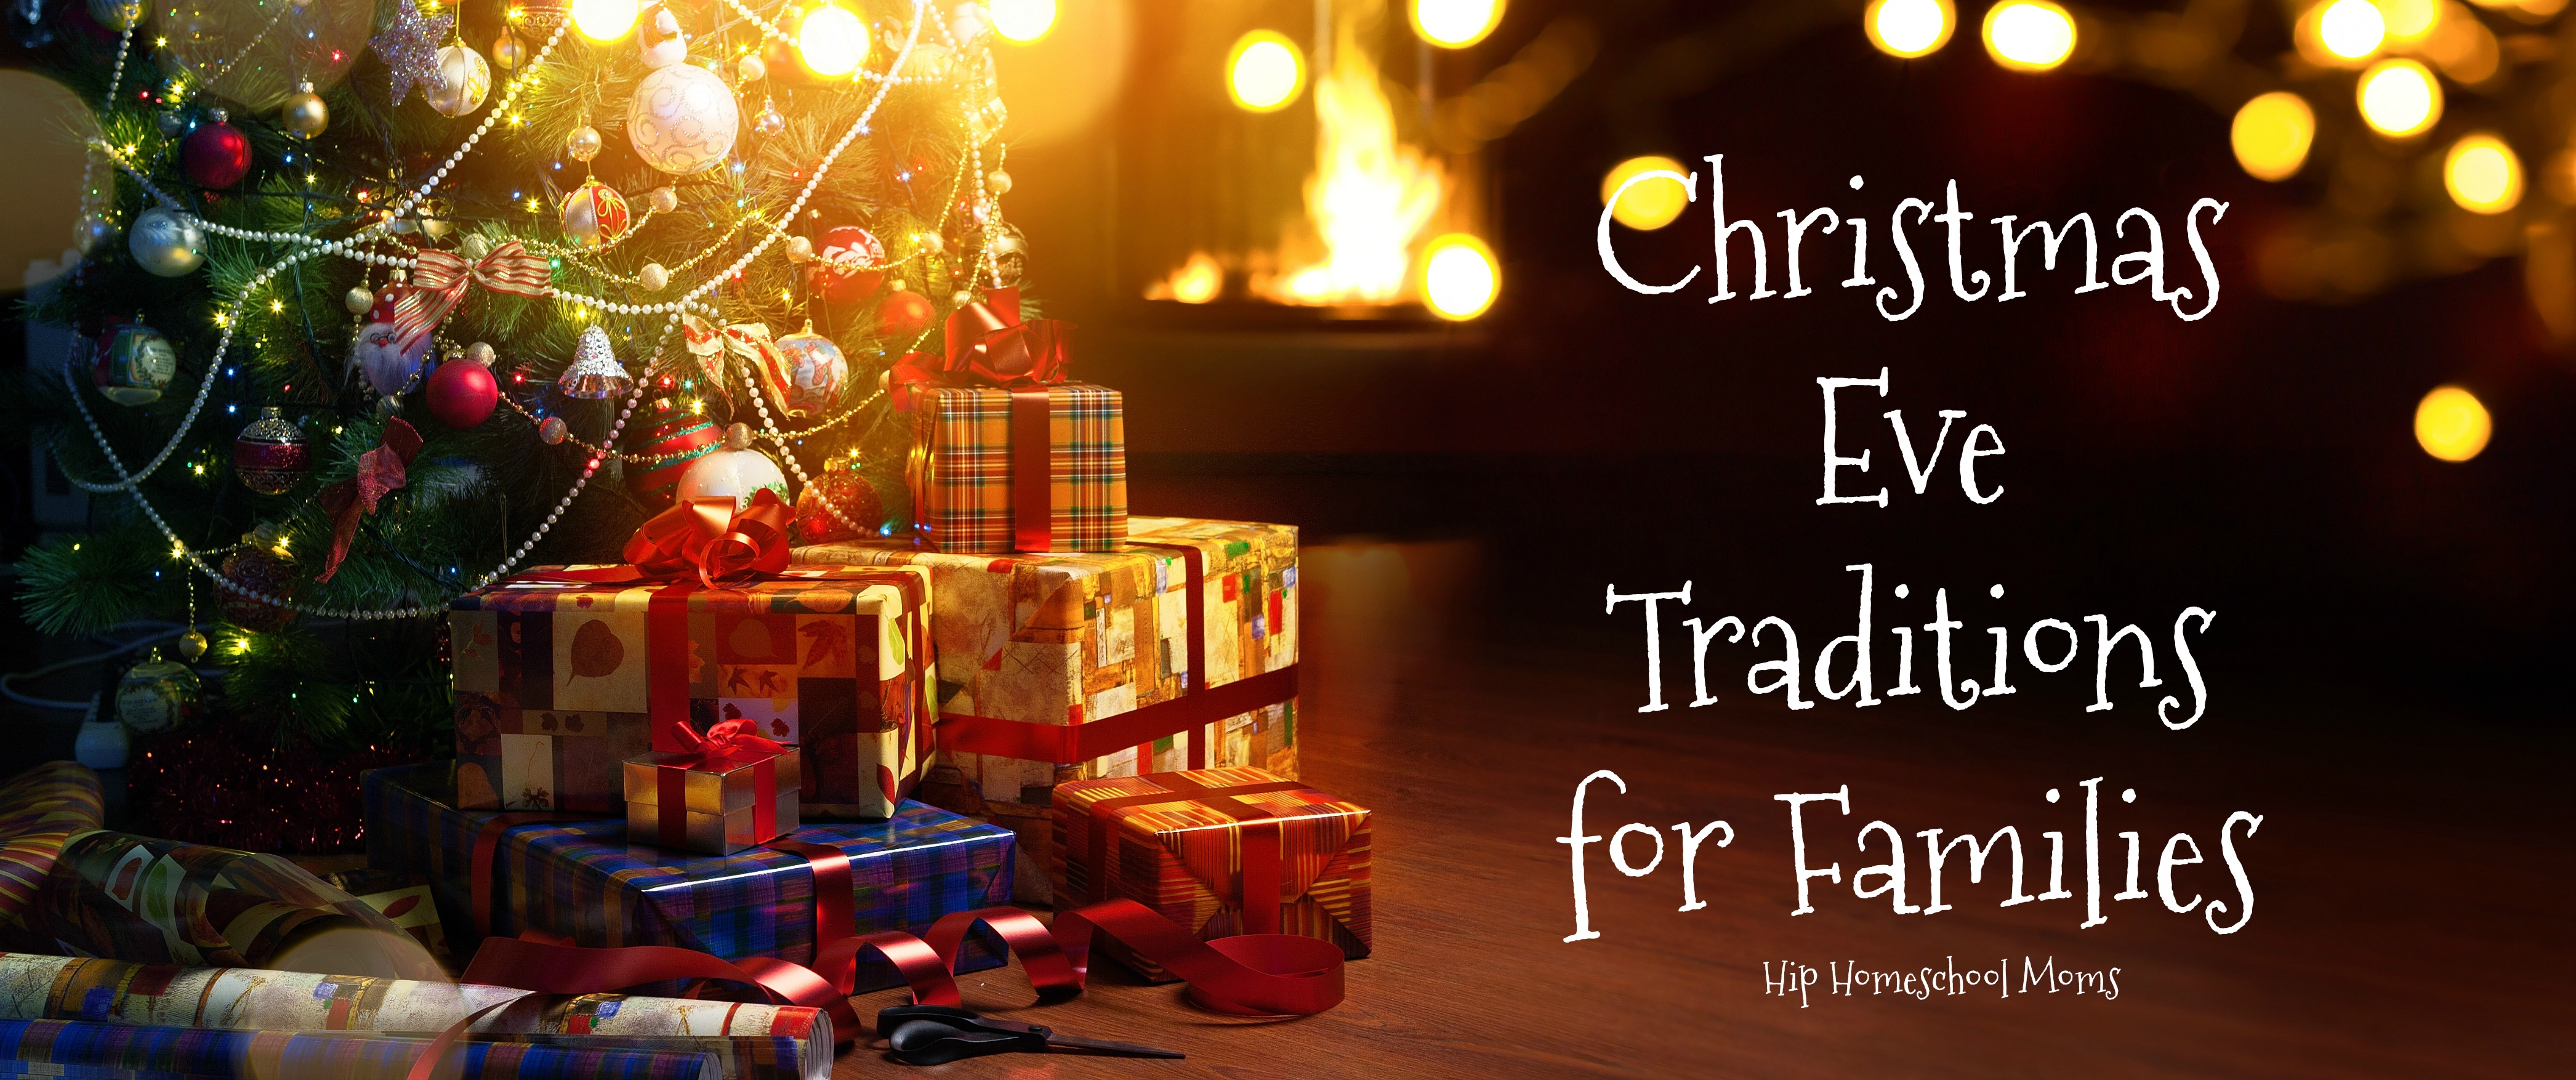 These are fun Christmas Eve traditions for families to enjoy together!